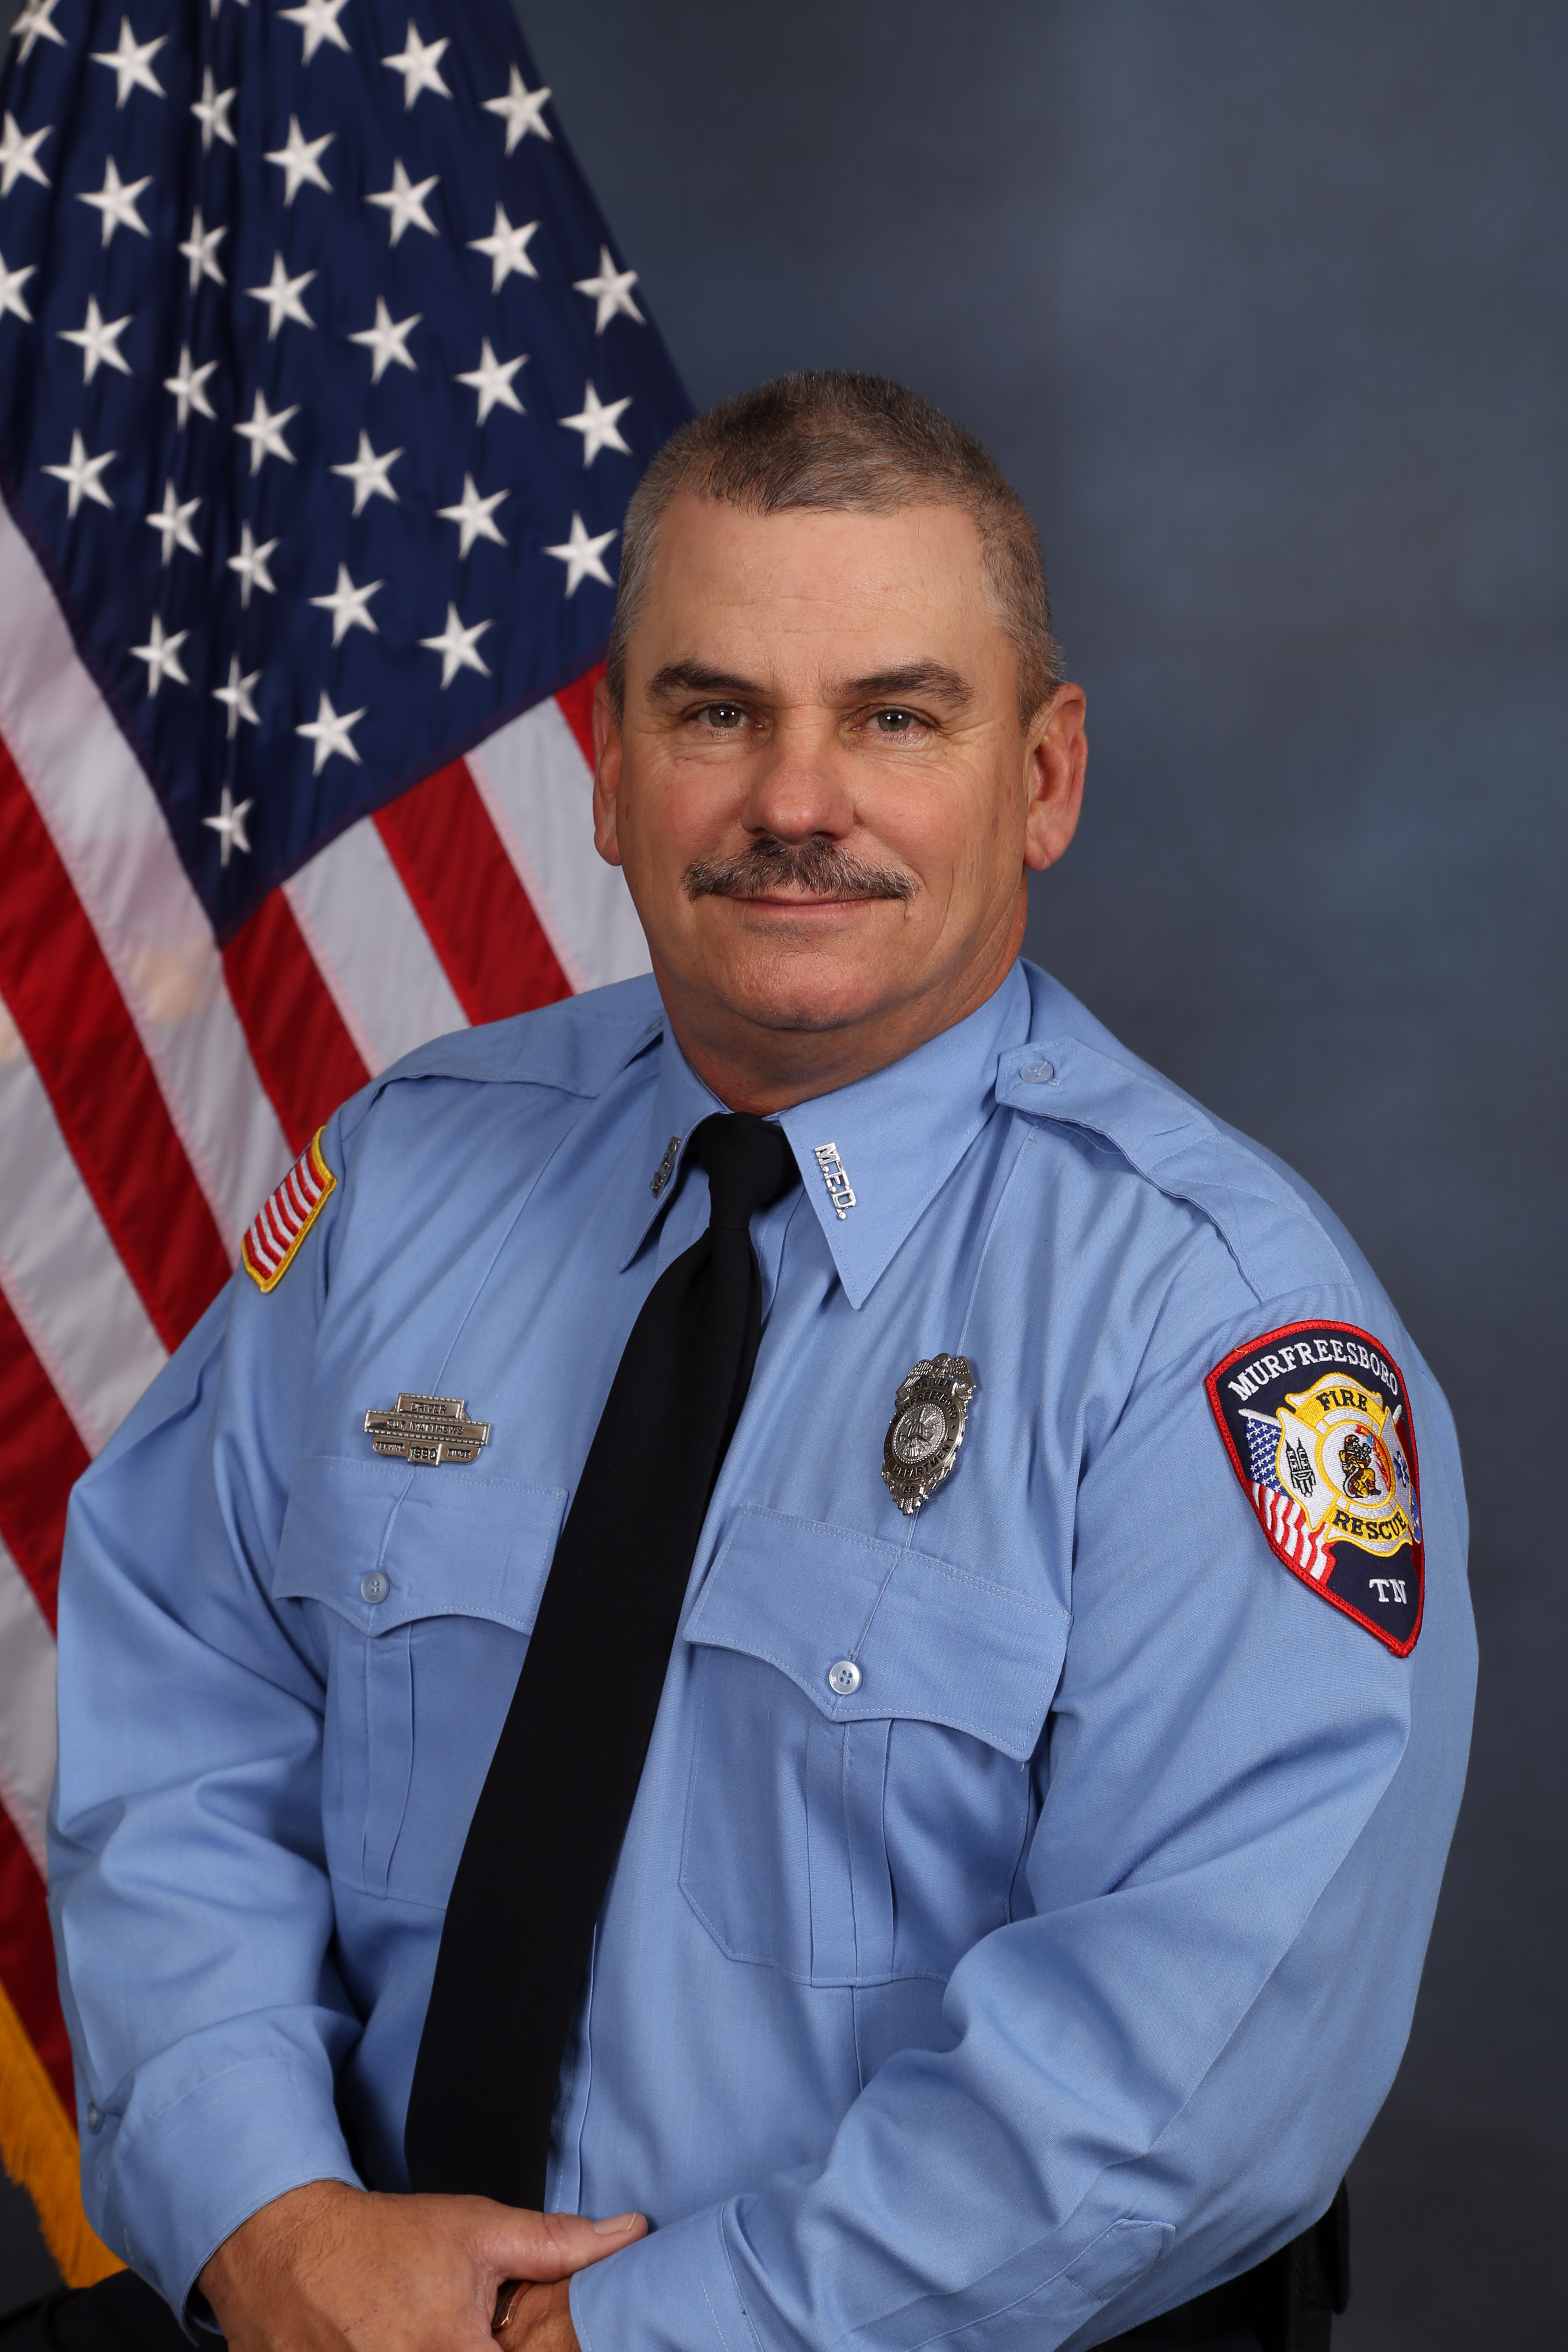 MFRD Engineer Retires with 28+ Years of Service